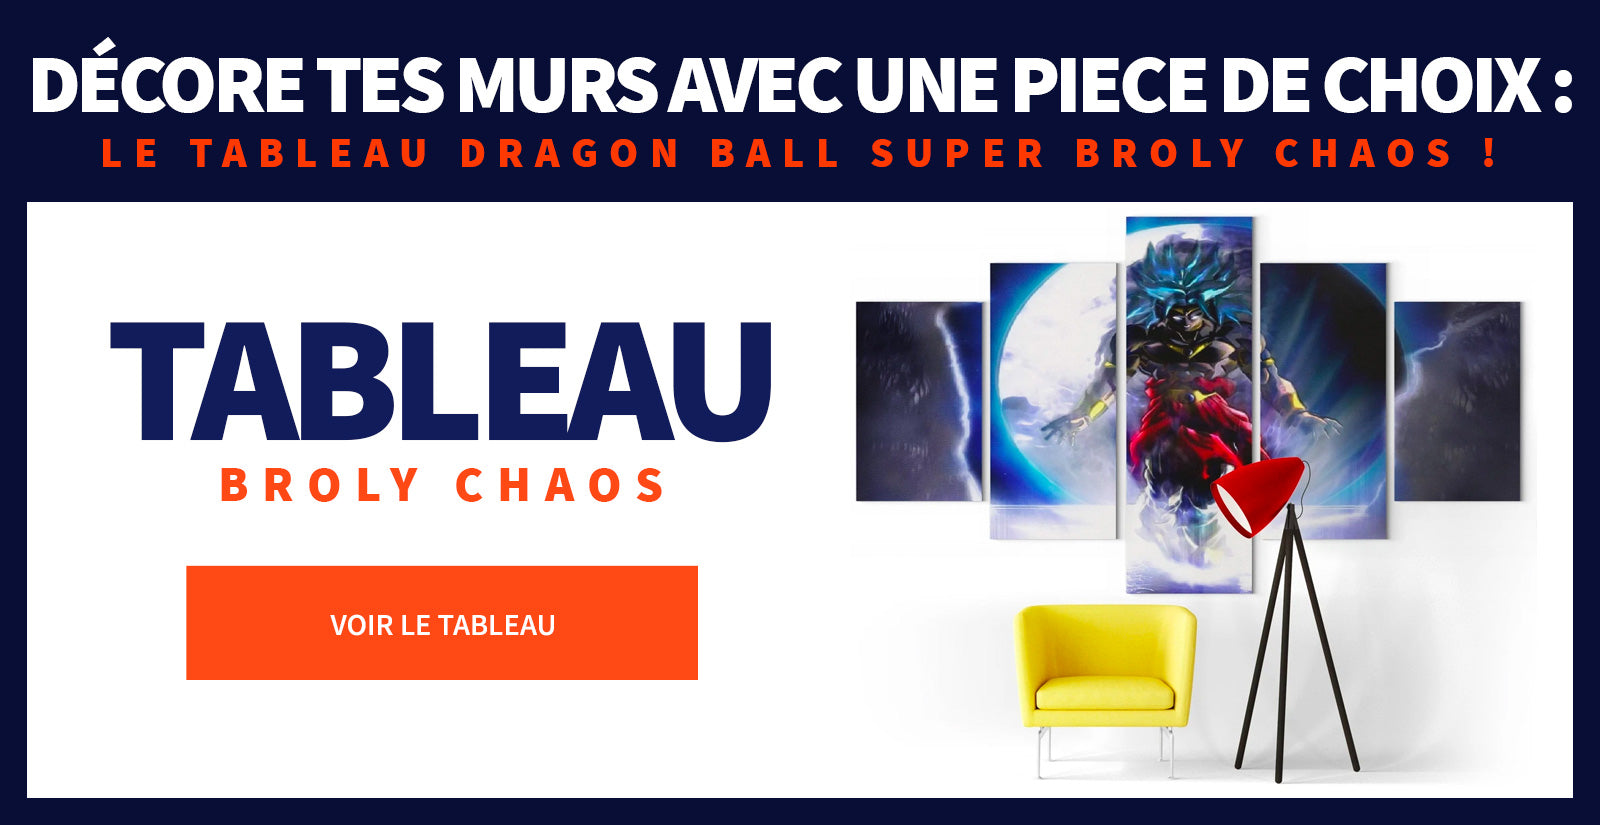 Tableau Broly Chaos